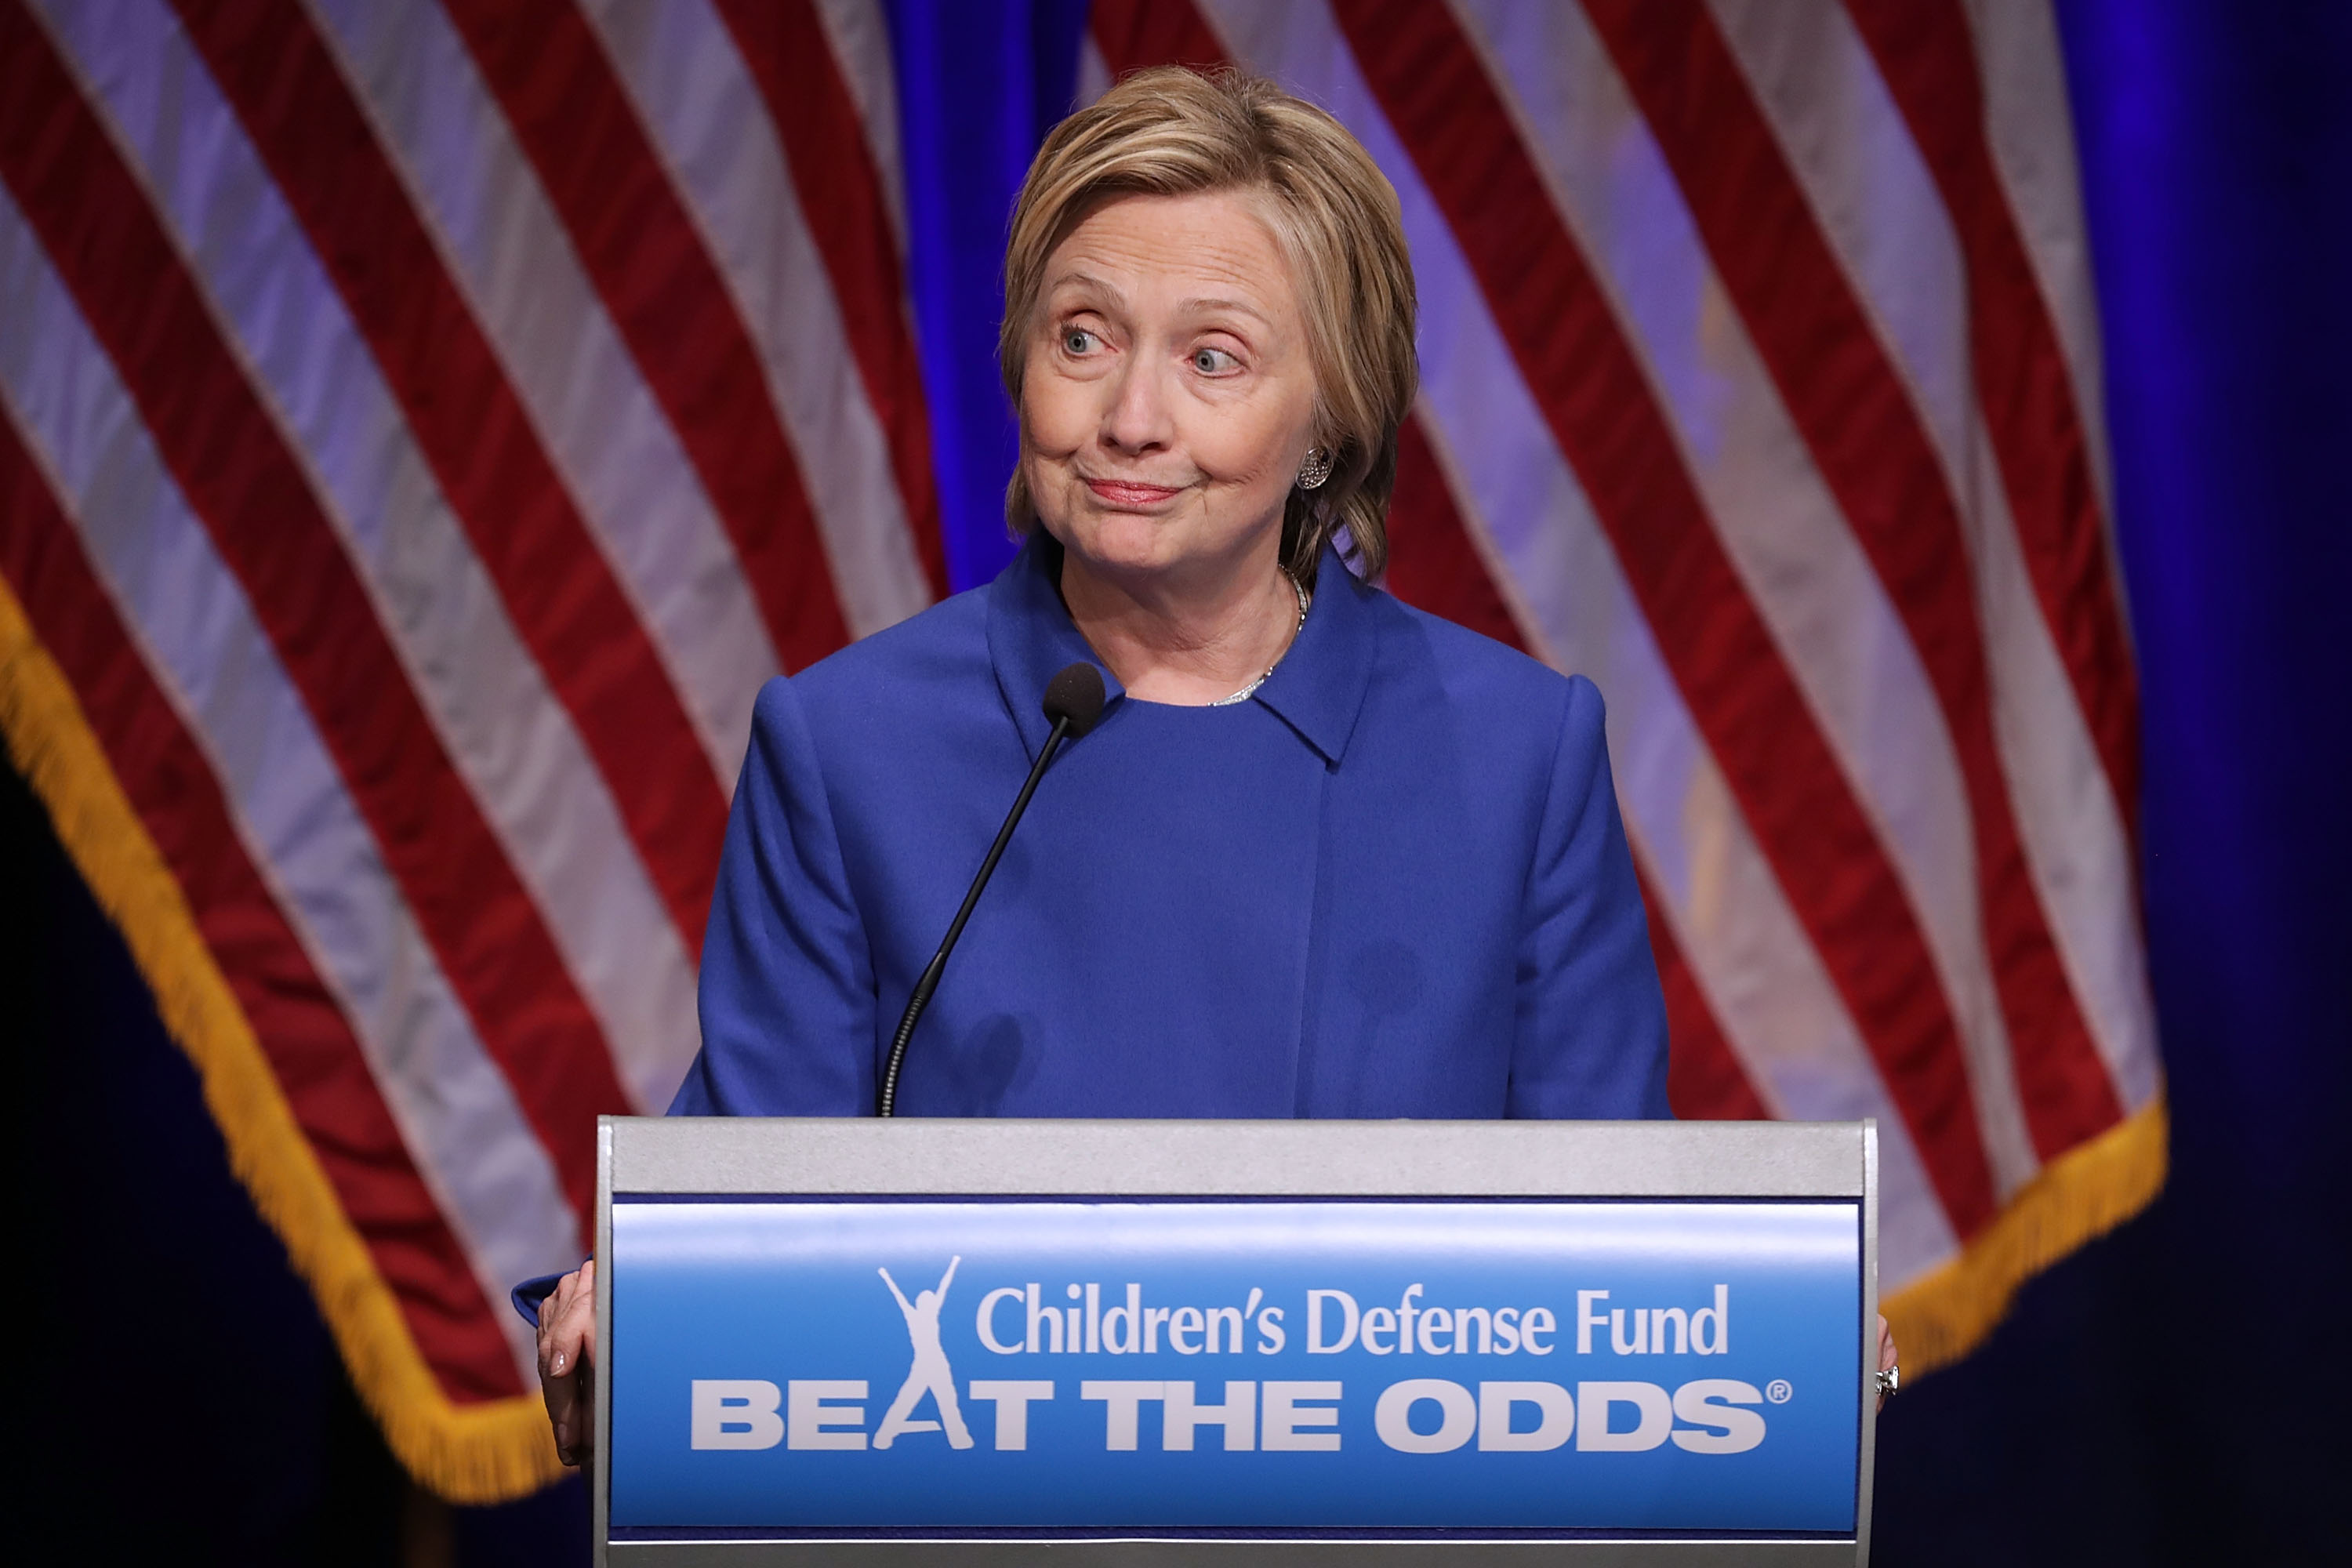 Former Secretary of State and former Democratic Presidential nominee Hillary Clinton delivers remarks while being honored during the Children's Defense Fund's Beat the Odds Celebration at the Newseum in Washington on Nov. 16, 2016.